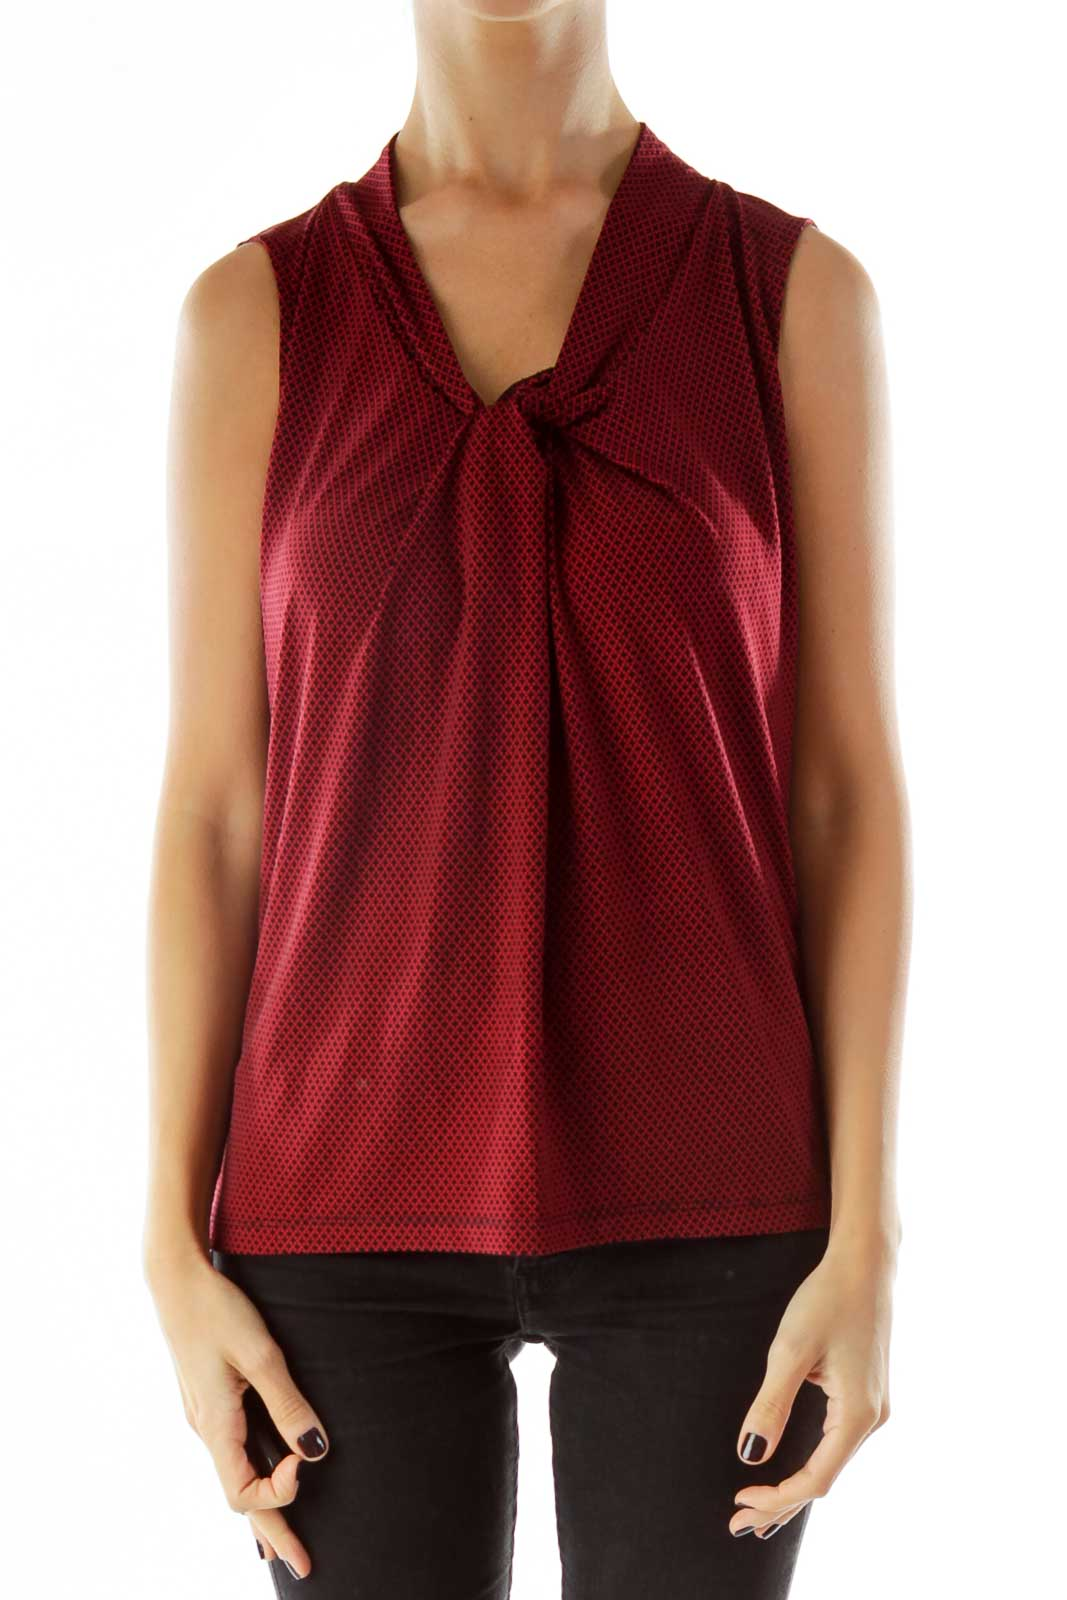 Red Black Knot Geometric Sleeveless Top